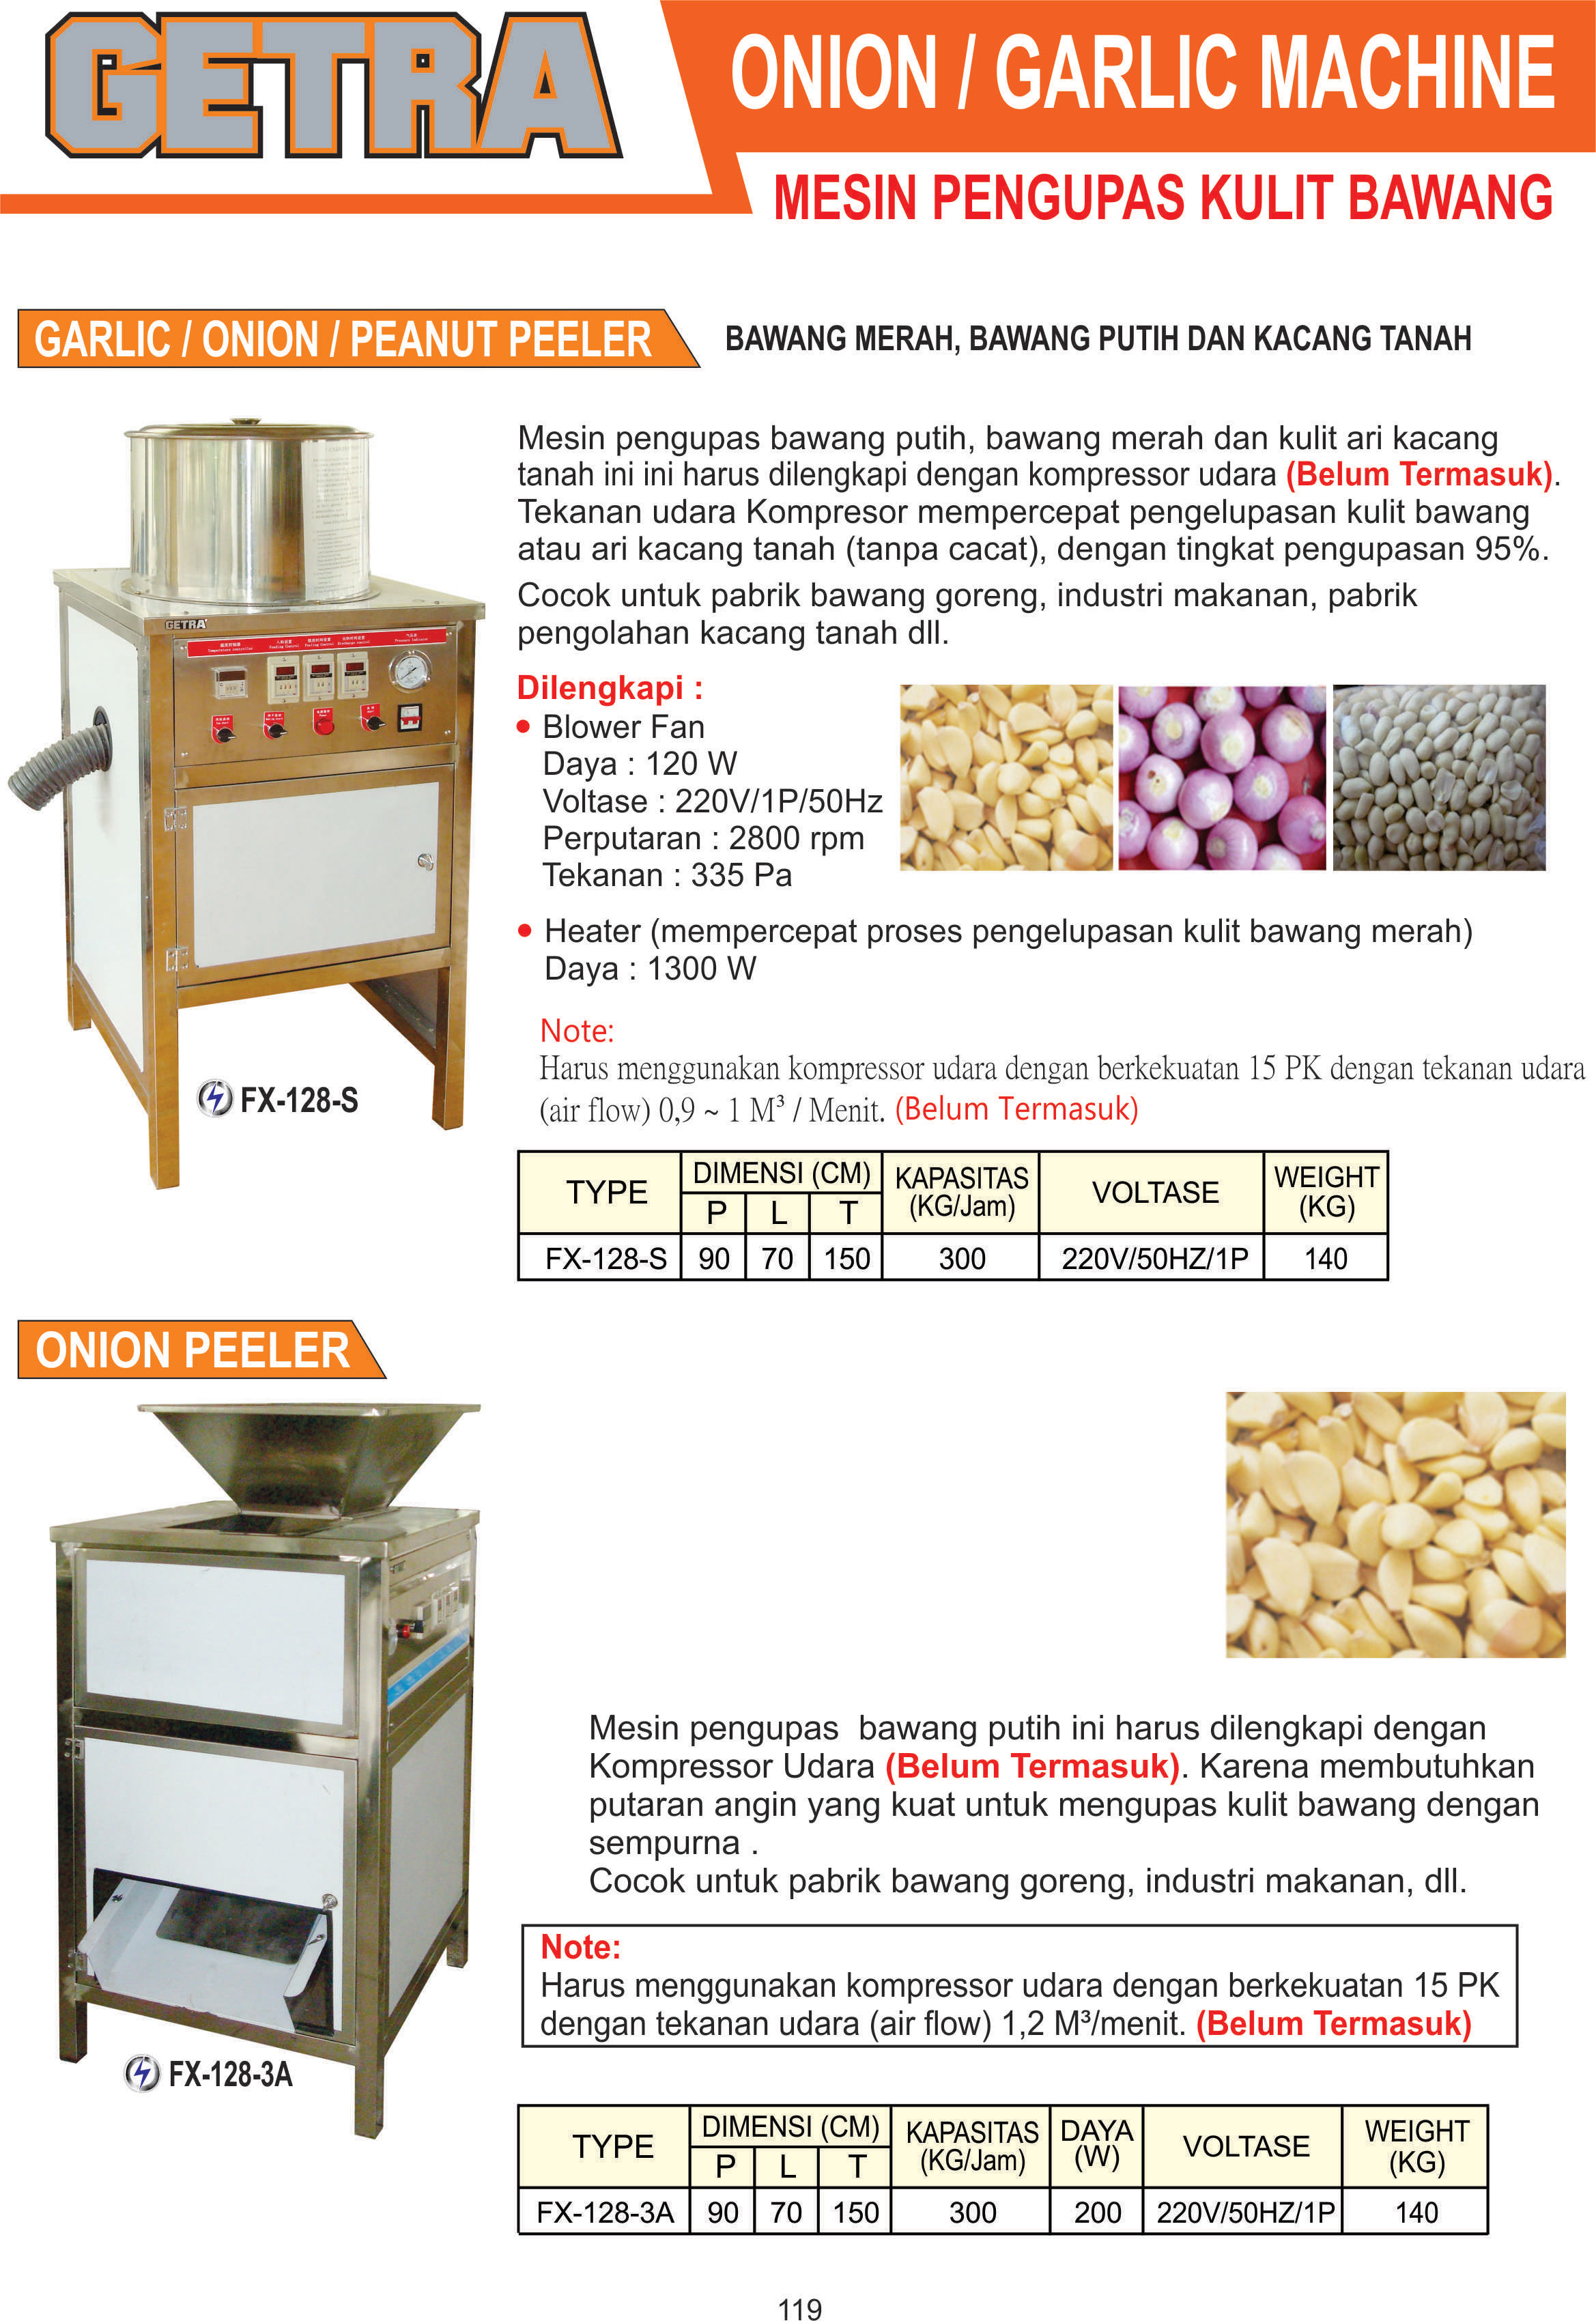 Onion atau Garlic Machine